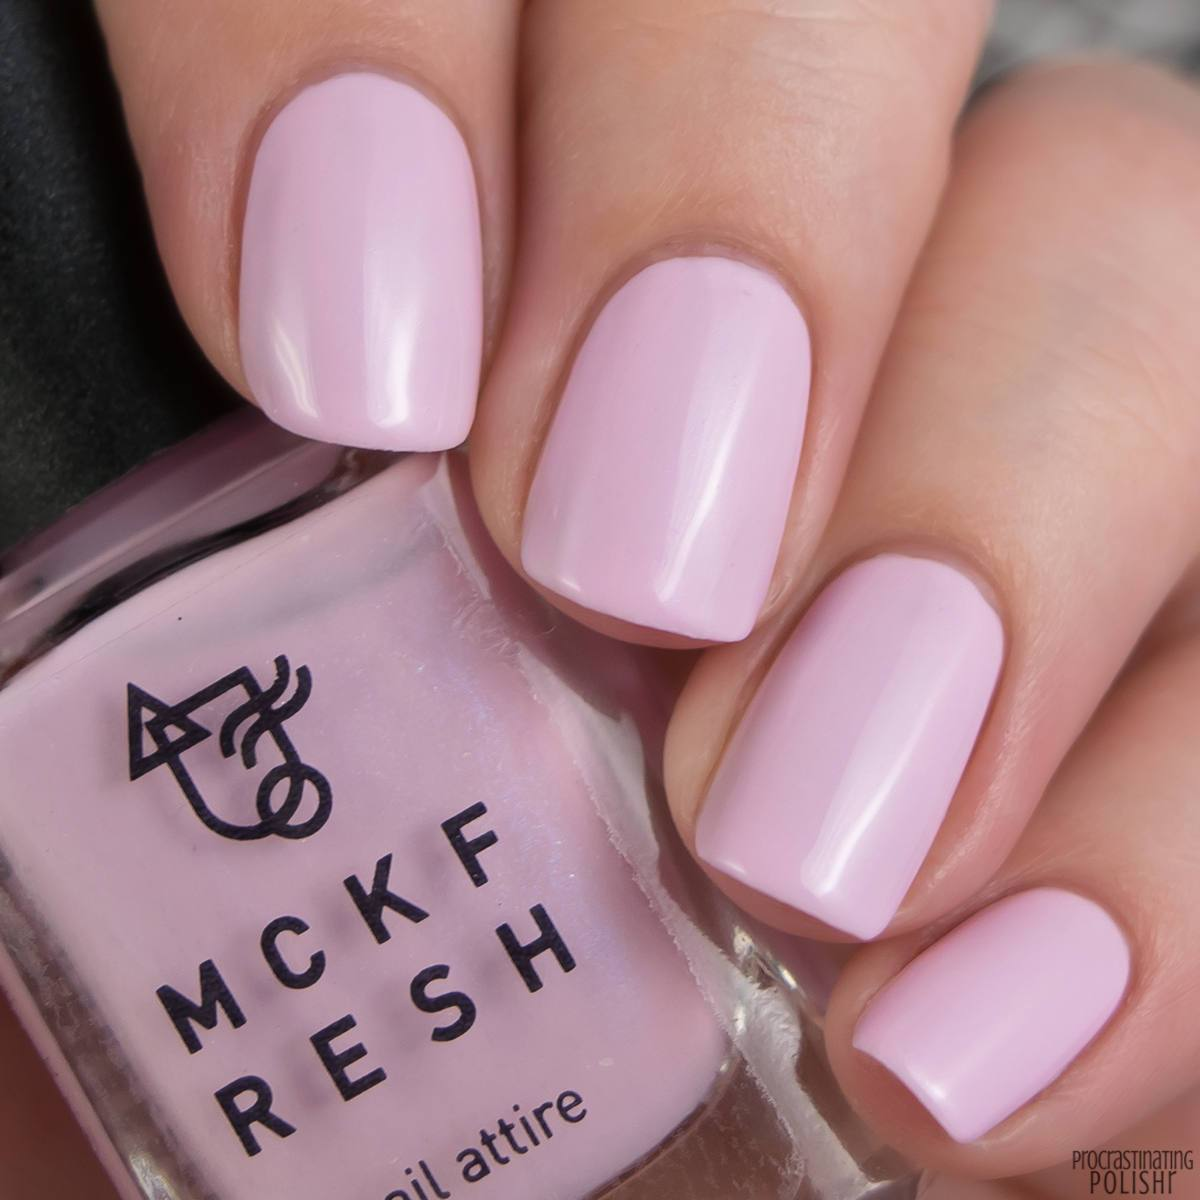 Mckfresh Flick Kick Nail Polish